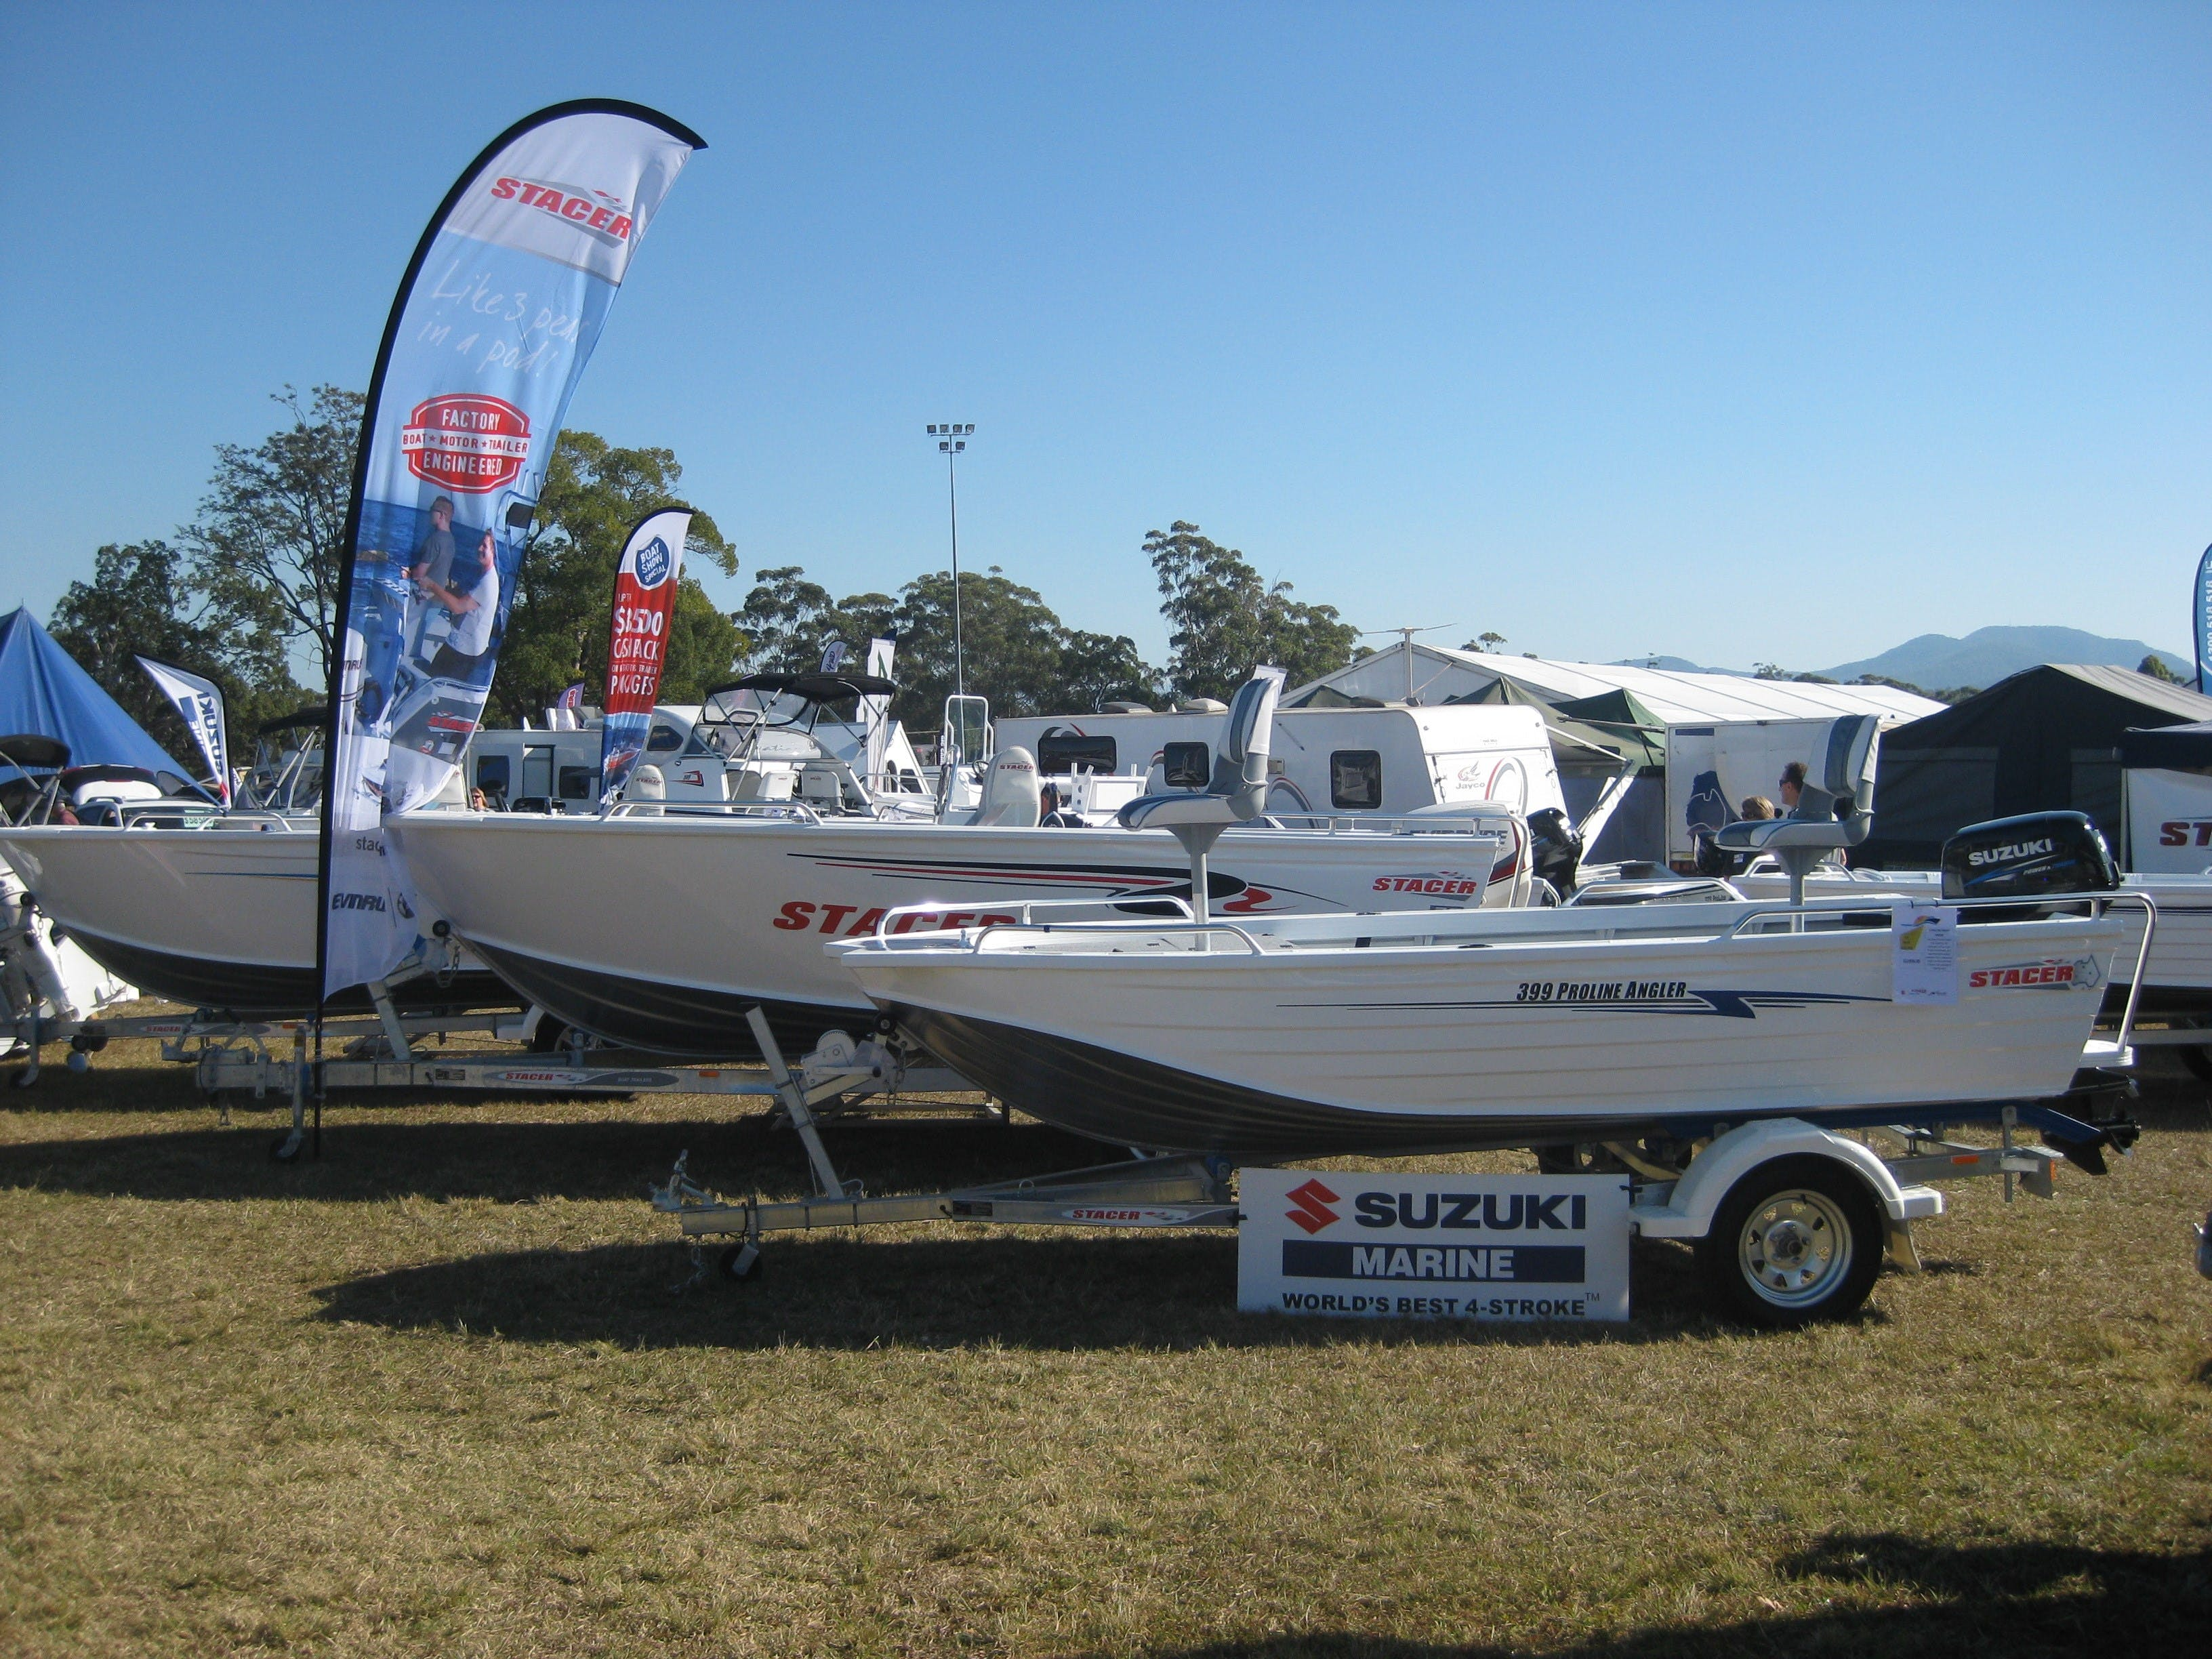 Mid North Coast Caravan Camping 4WD Fish and Boat Show - Accommodation Rockhampton